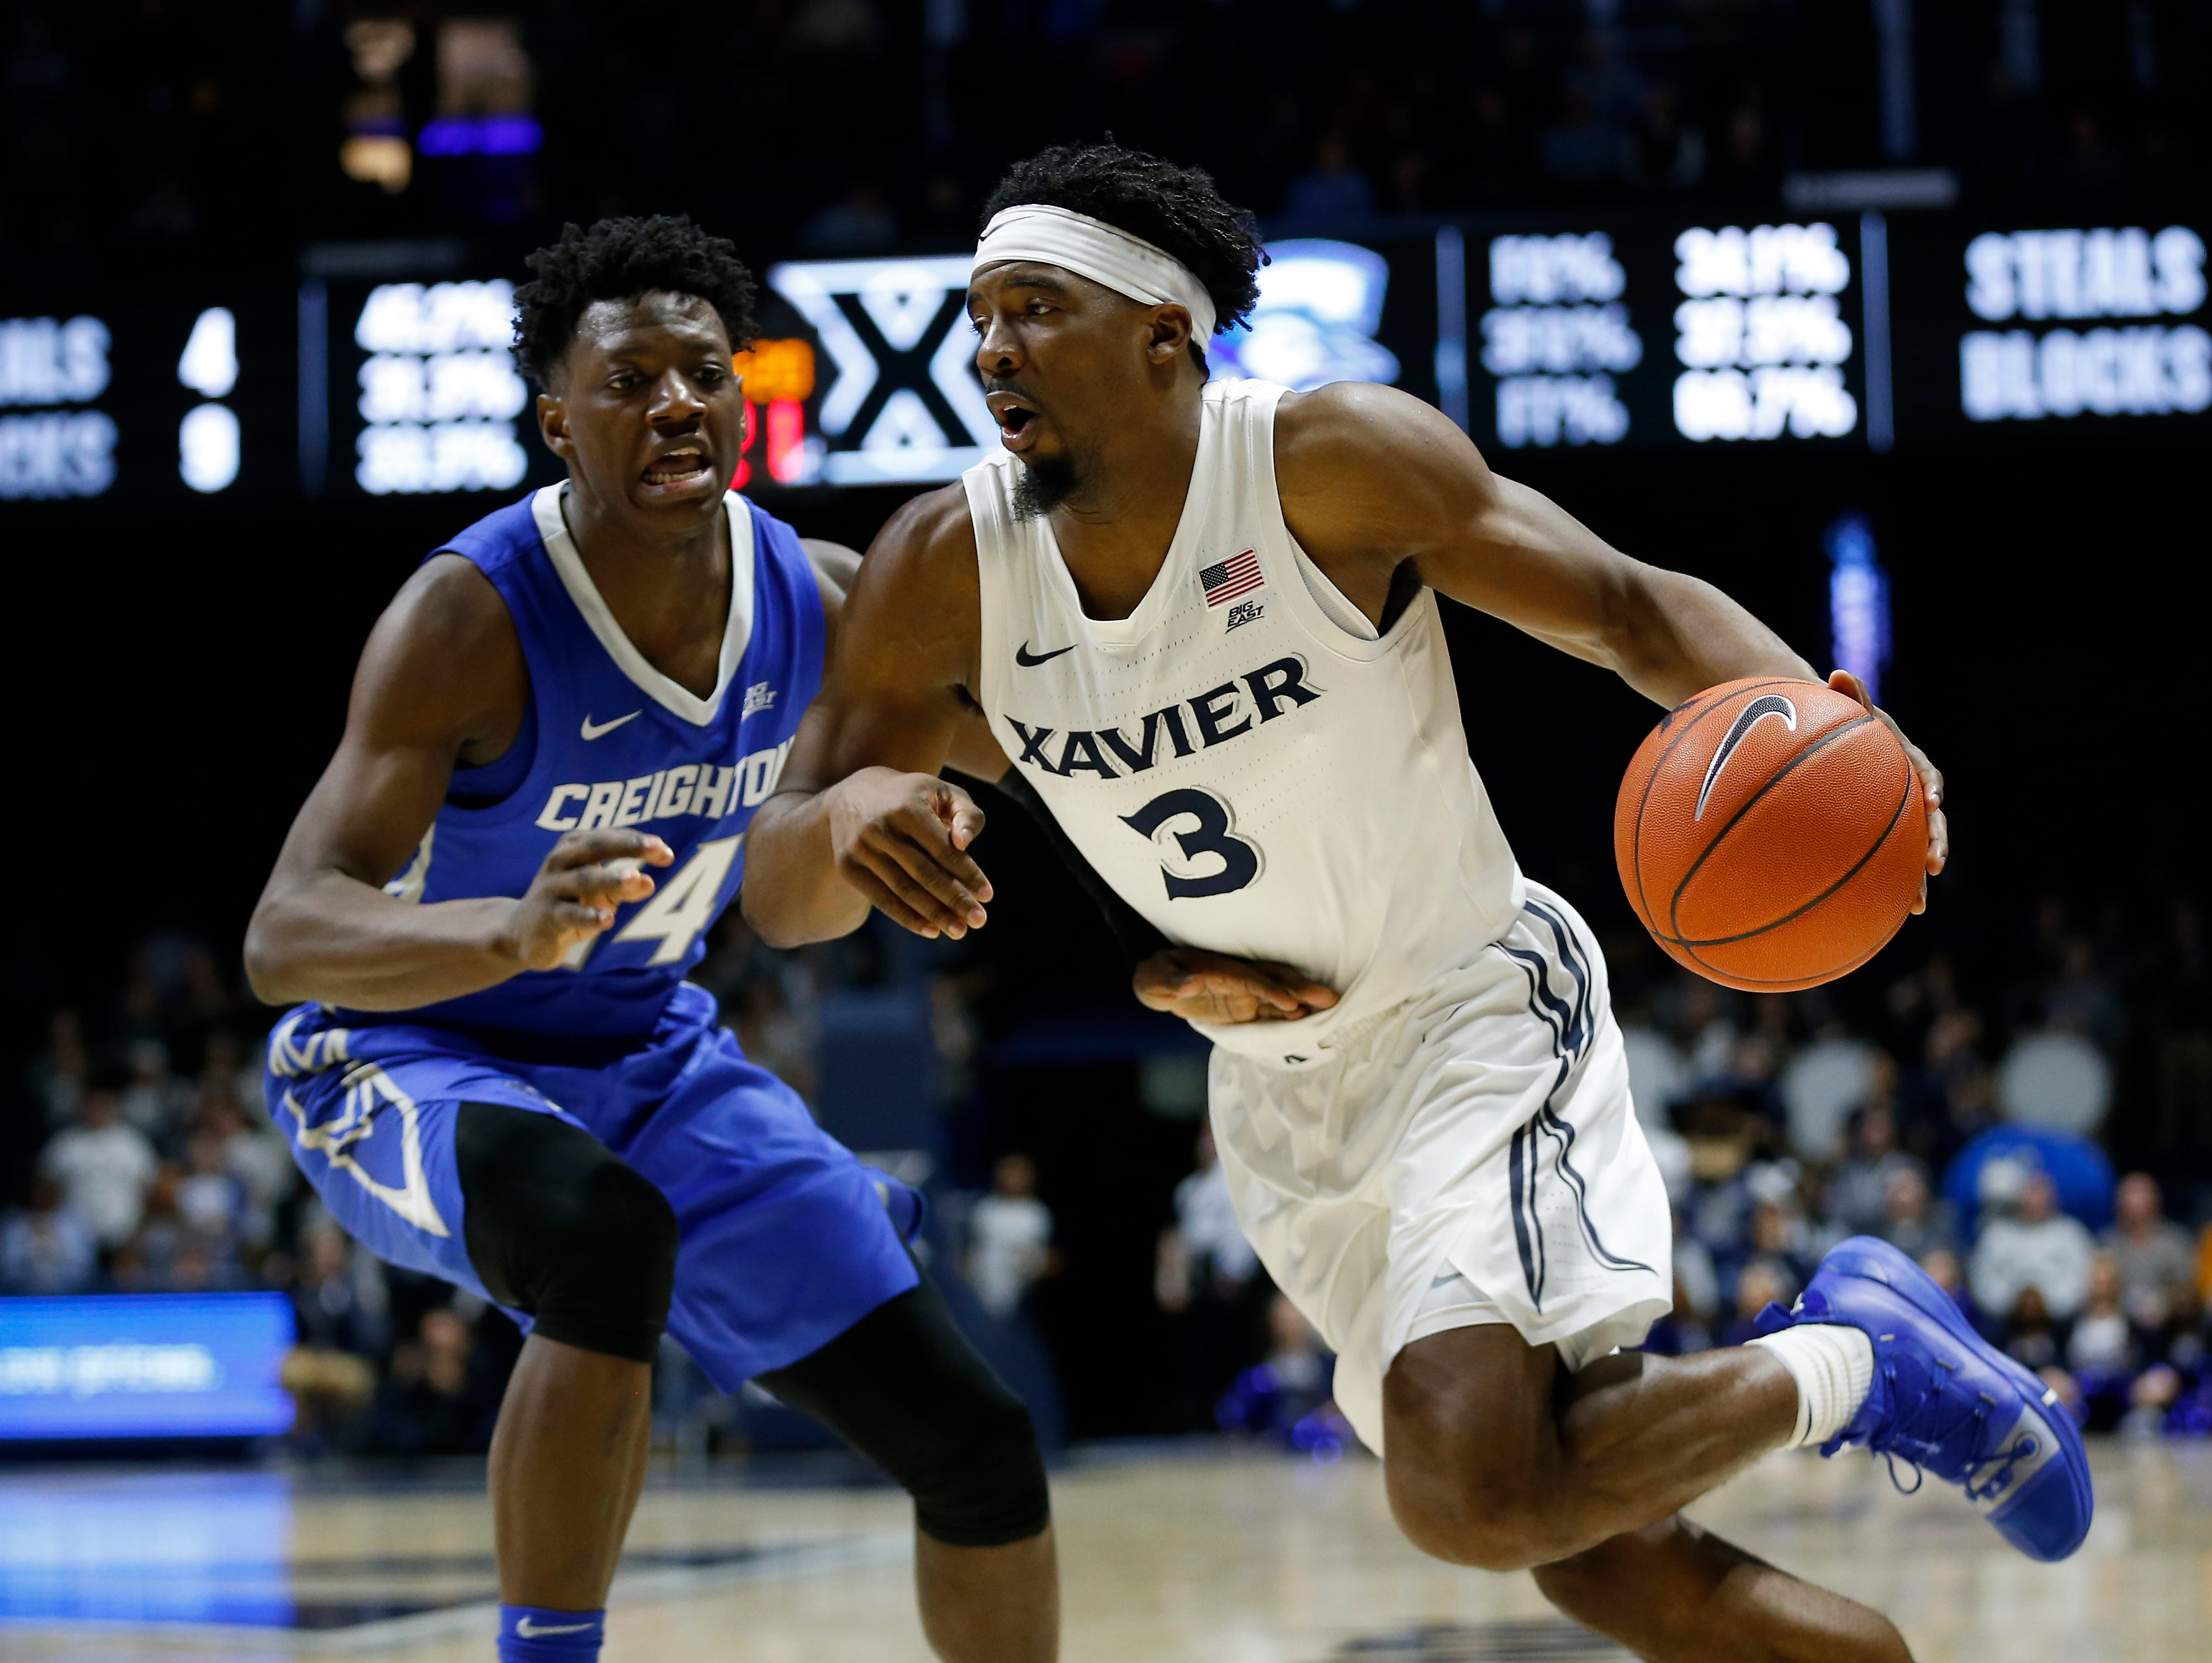 Xavier Musketeers guard Quentin Goodin (3) drives against Creighton Bluejays guard Kaleb Alejandro Joseph (14) in the second half of the NCAA Big East Conference basketball game between the Xavier Musketeers and the Creighton Bluejays at Xavier's Cintas Center in Cincinnati on Wednesday, Feb. 13, 2019. Xavier broke a 6-game losing streak with a 64-61 overtime win over Creighton.